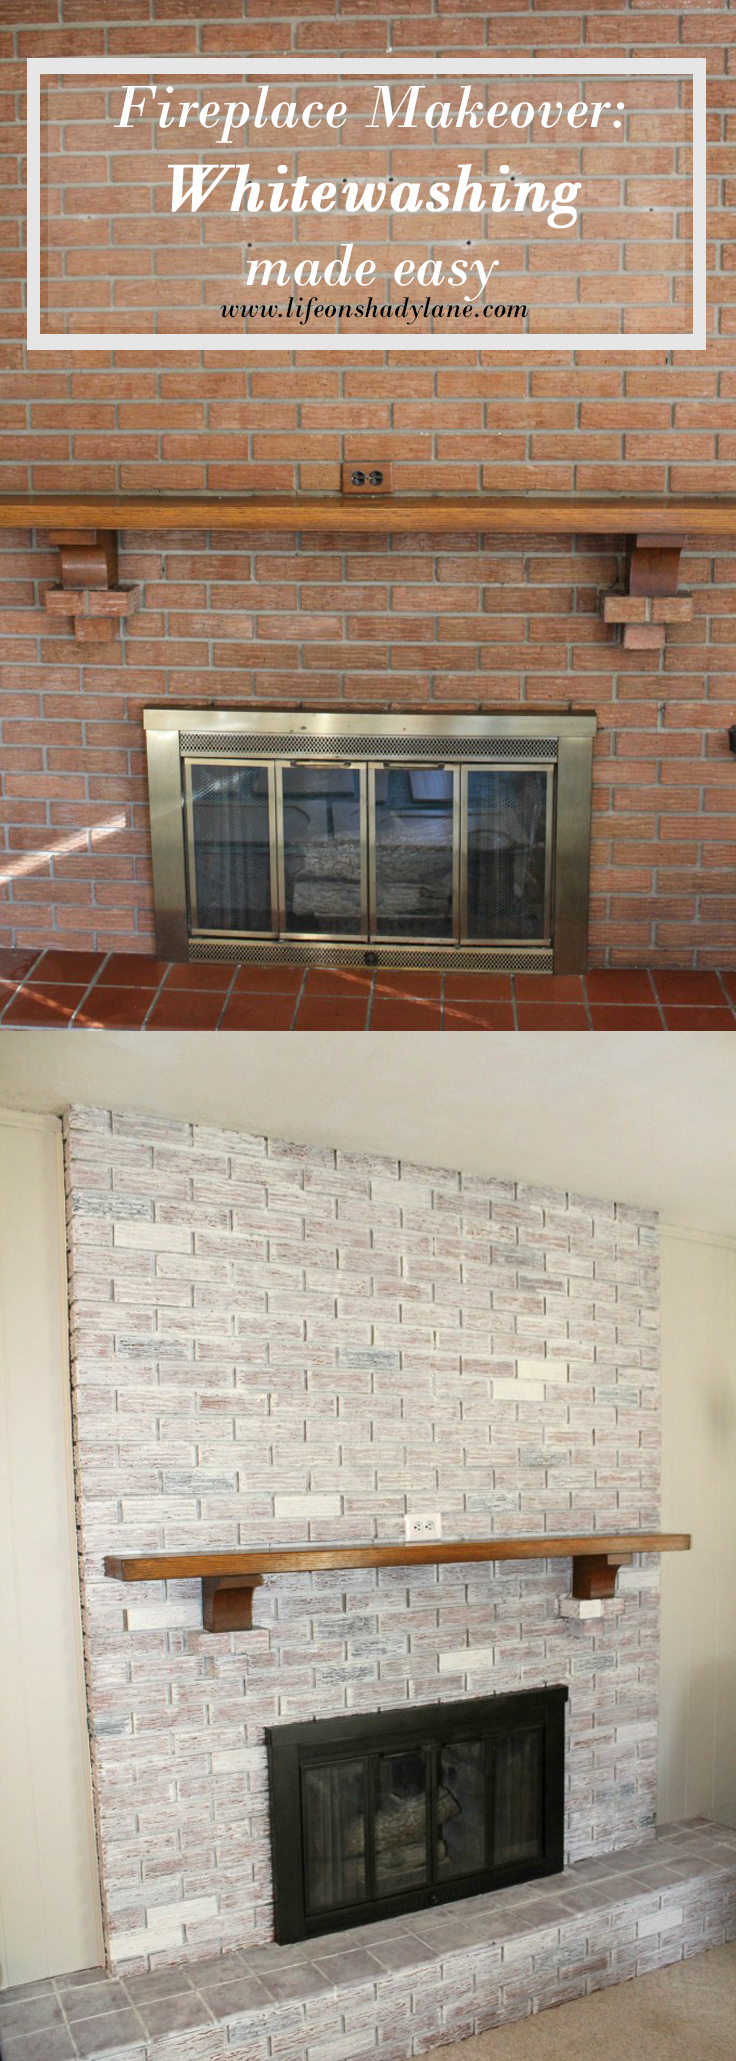 How to Whitewash a Brick Fireplace via Life on Shady Lane blog